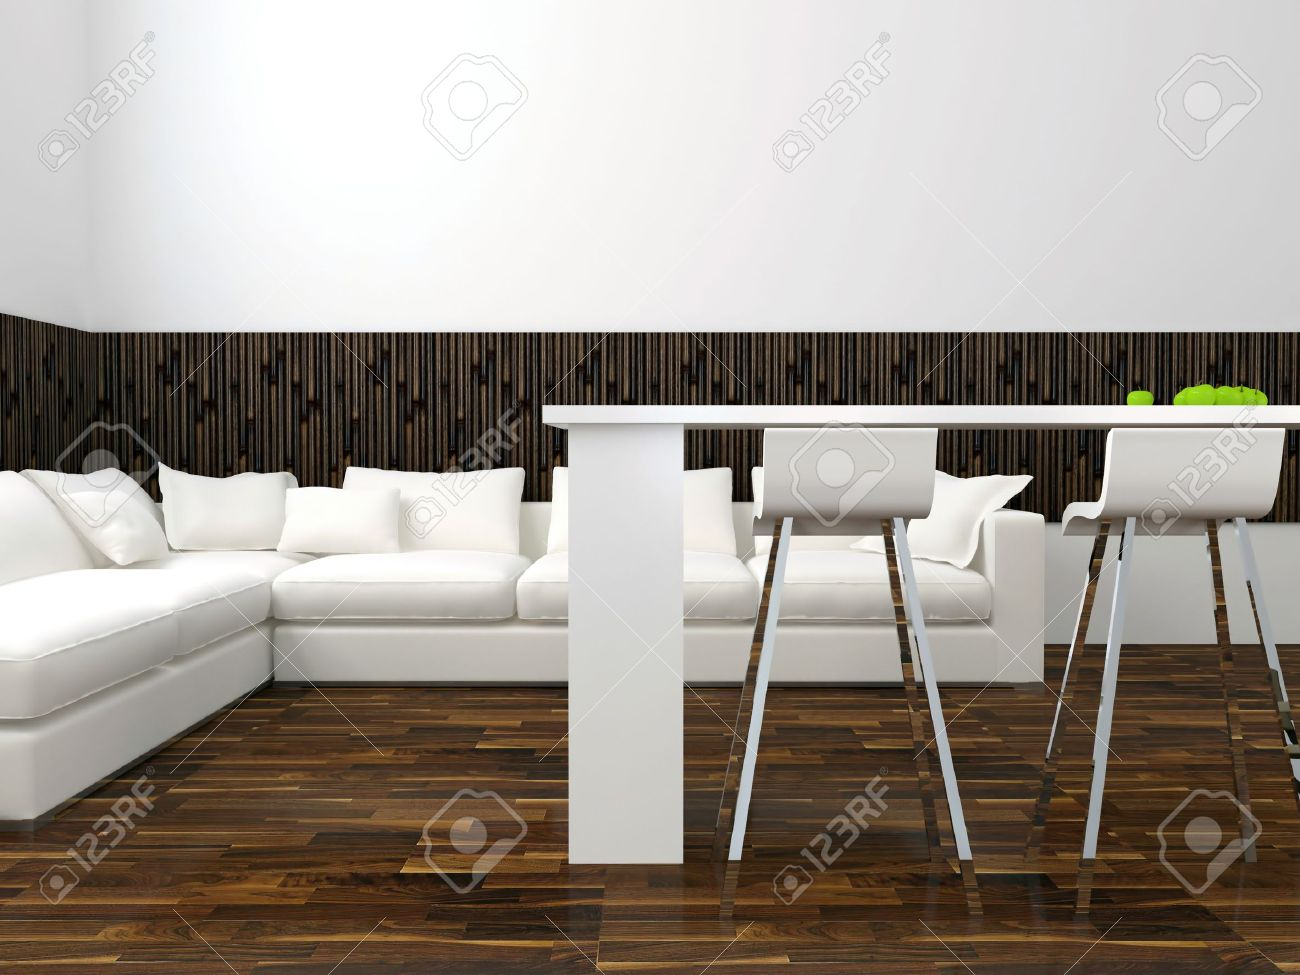 Sensational Interior Design Of Modern White Living Room With Big White Sofa Pdpeps Interior Chair Design Pdpepsorg